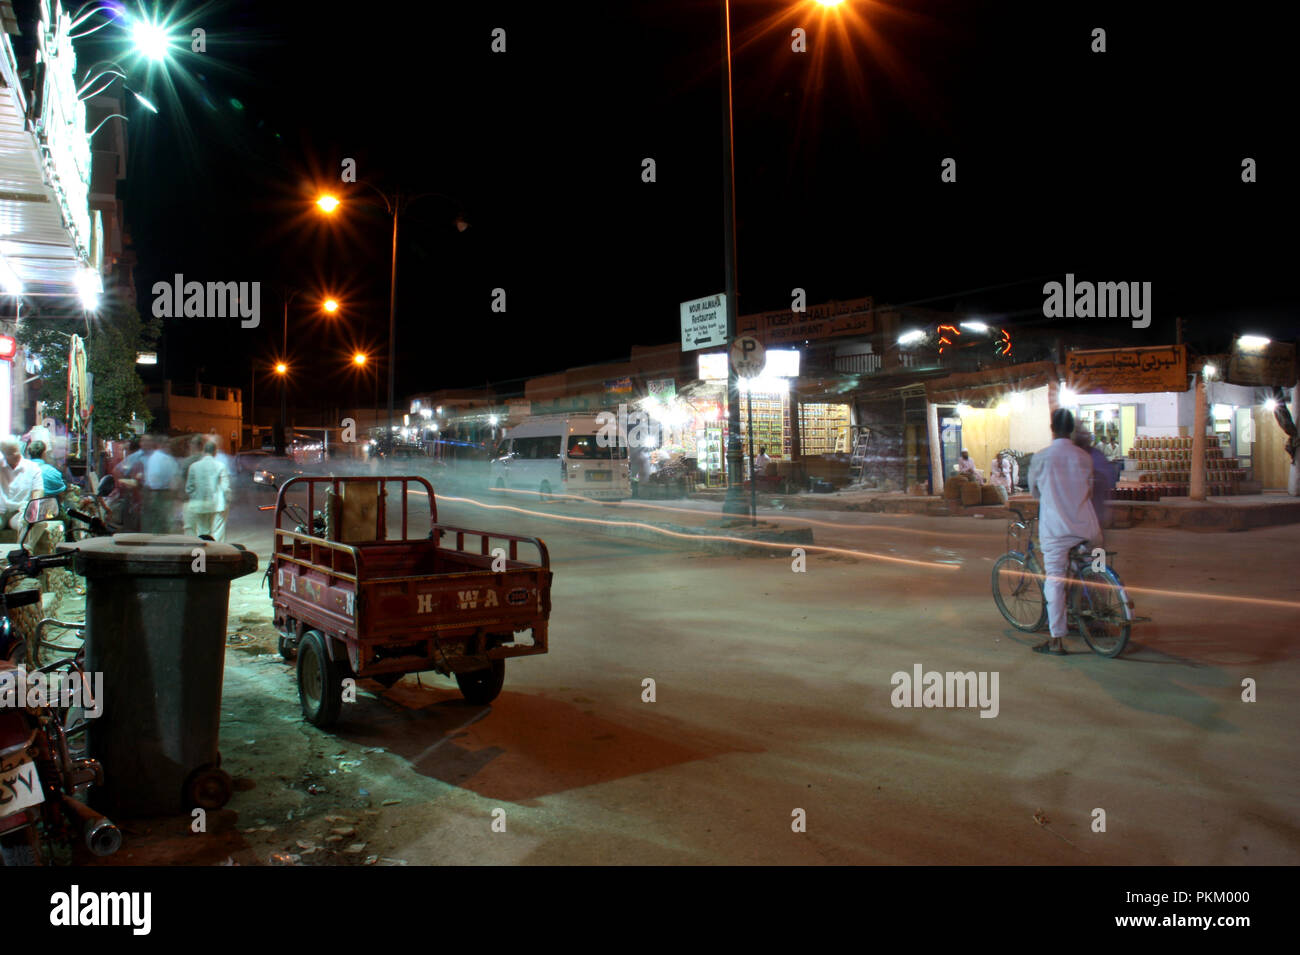 Men in front of a bar enjoying the night life in a street in Siwa, Siwa Oasis, Egypt - Stock Image